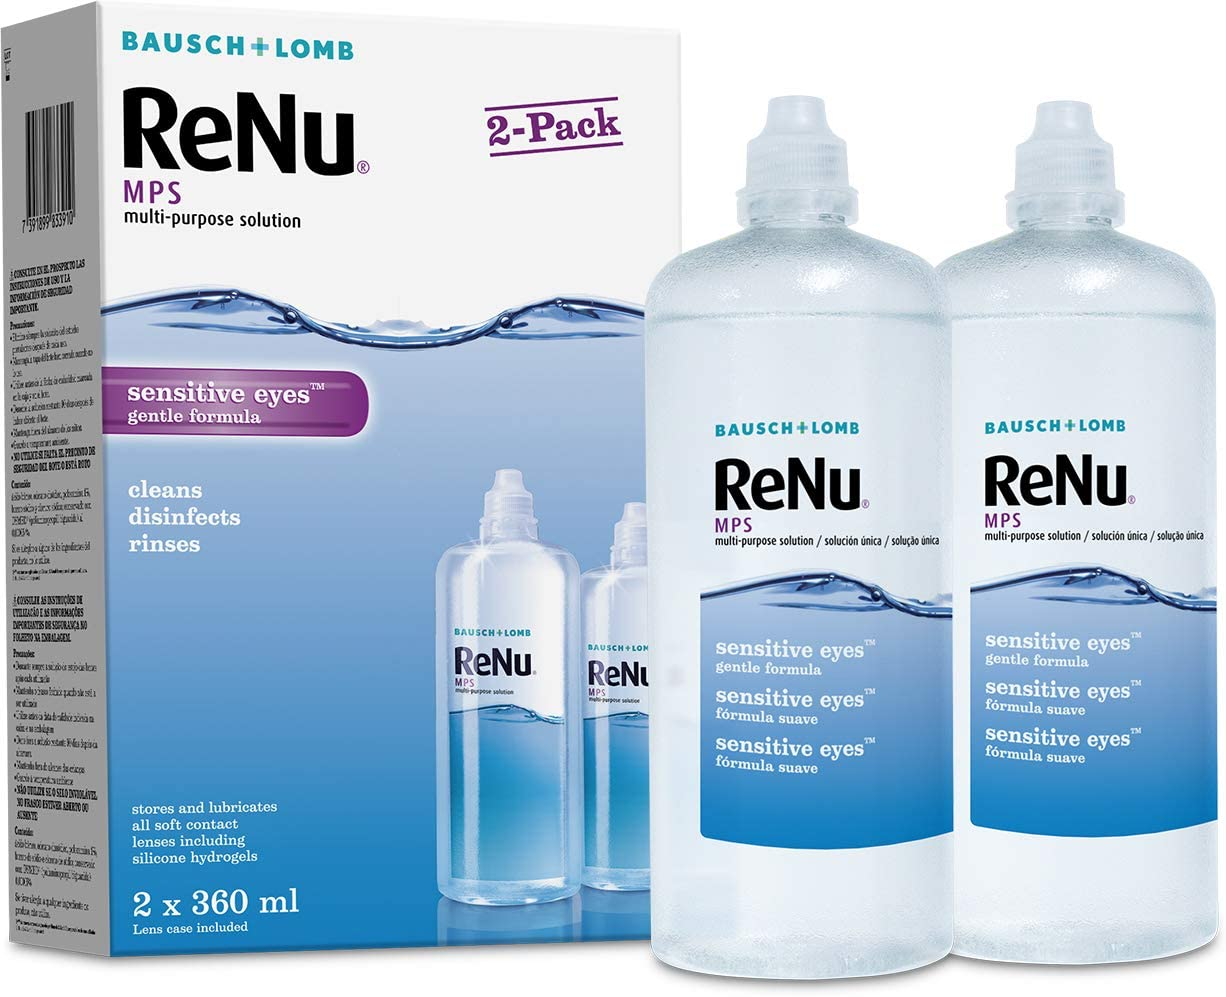 Renu Multi Purpose Contact Lens Solution 2 X 360ml Soft Contact Lenses For Comfortable Wear Gentle On Sensitive Eyes Clean Disinfect Rinse And Store Your Lenses Lens Case Included